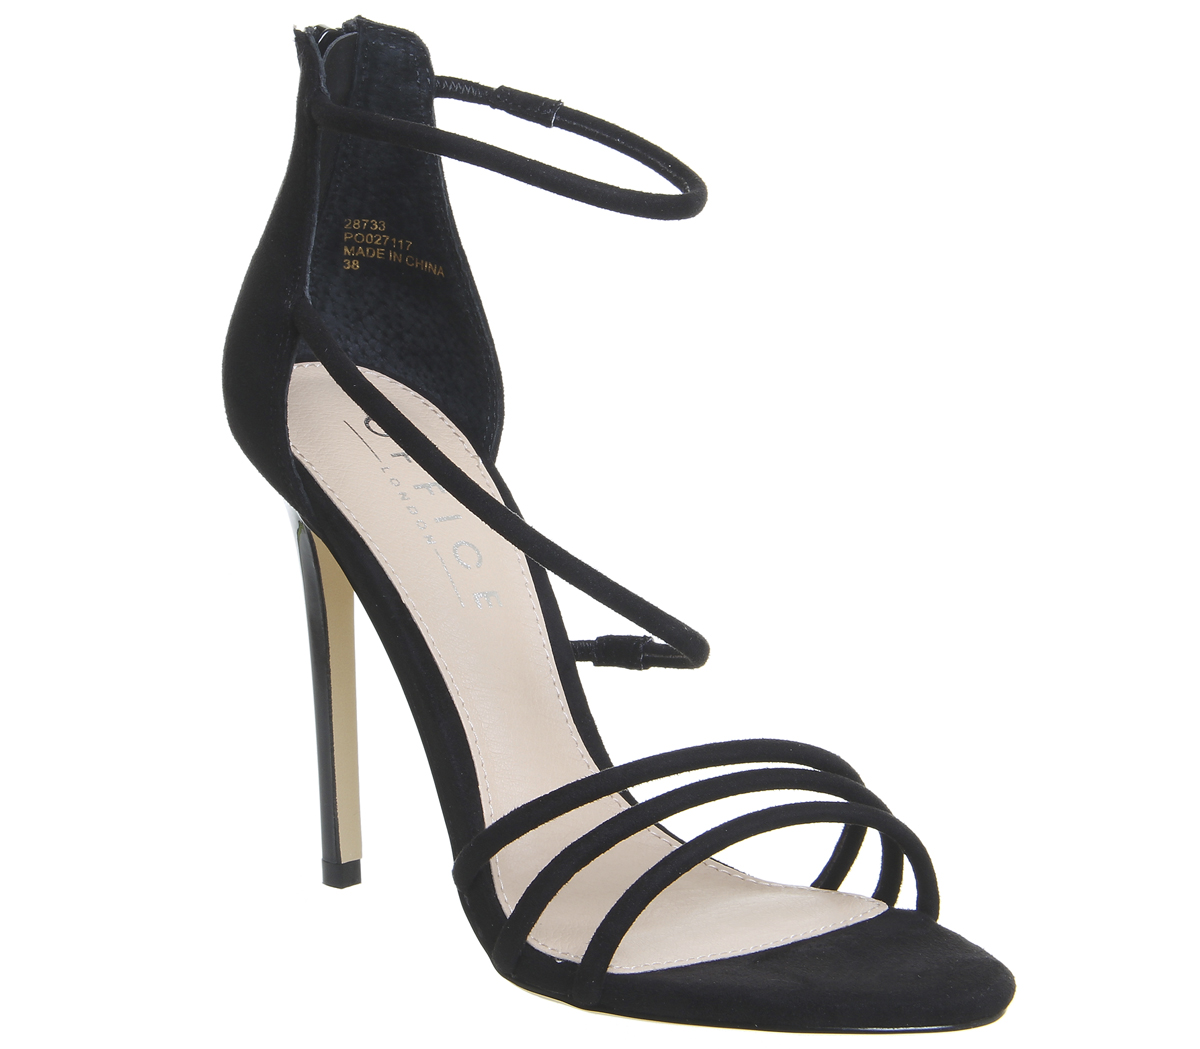 0ab9fb171 Womens-Office-Harness-Strappy-Sandals-Black-Heels thumbnail 3